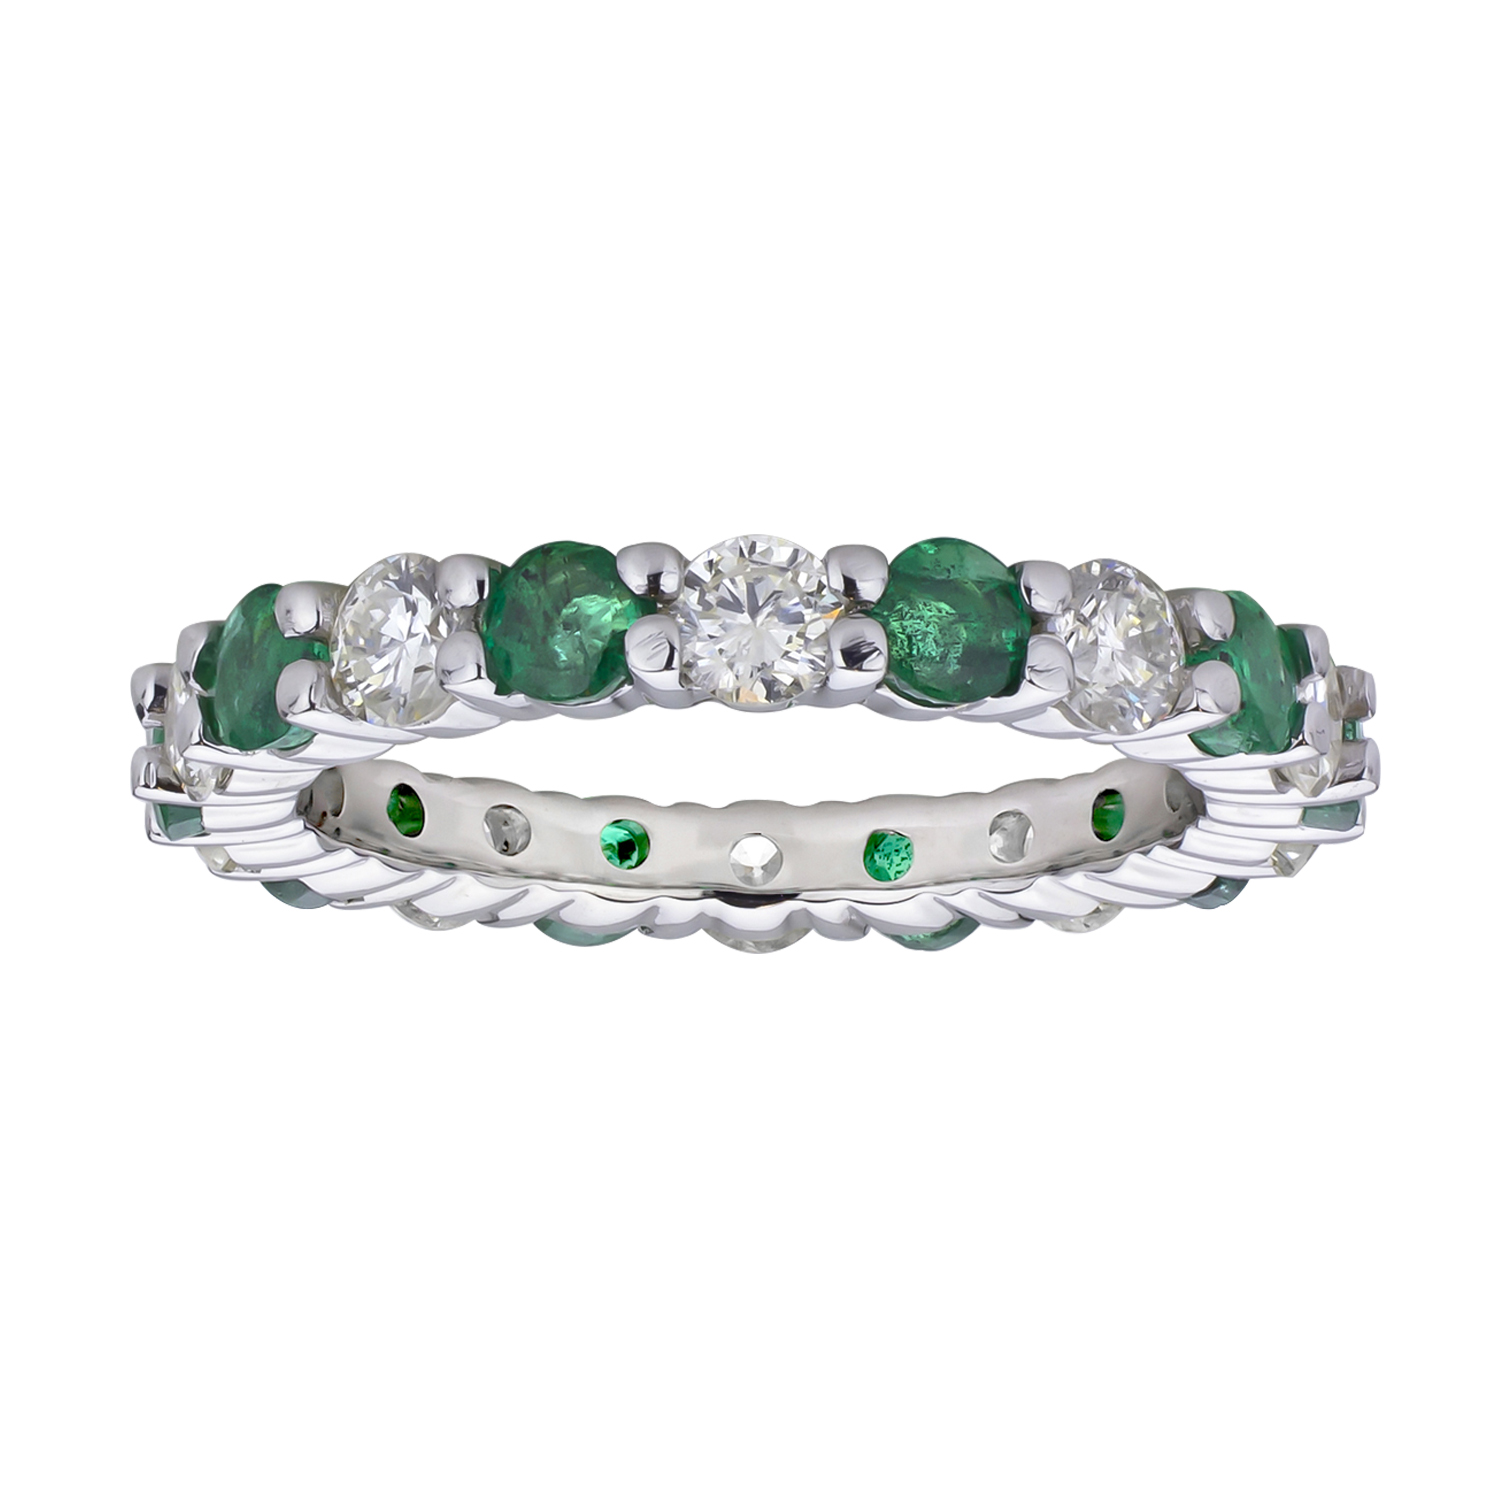 View 2.00cttw Diamond and Emerald Eternity Band set in 14k Gold